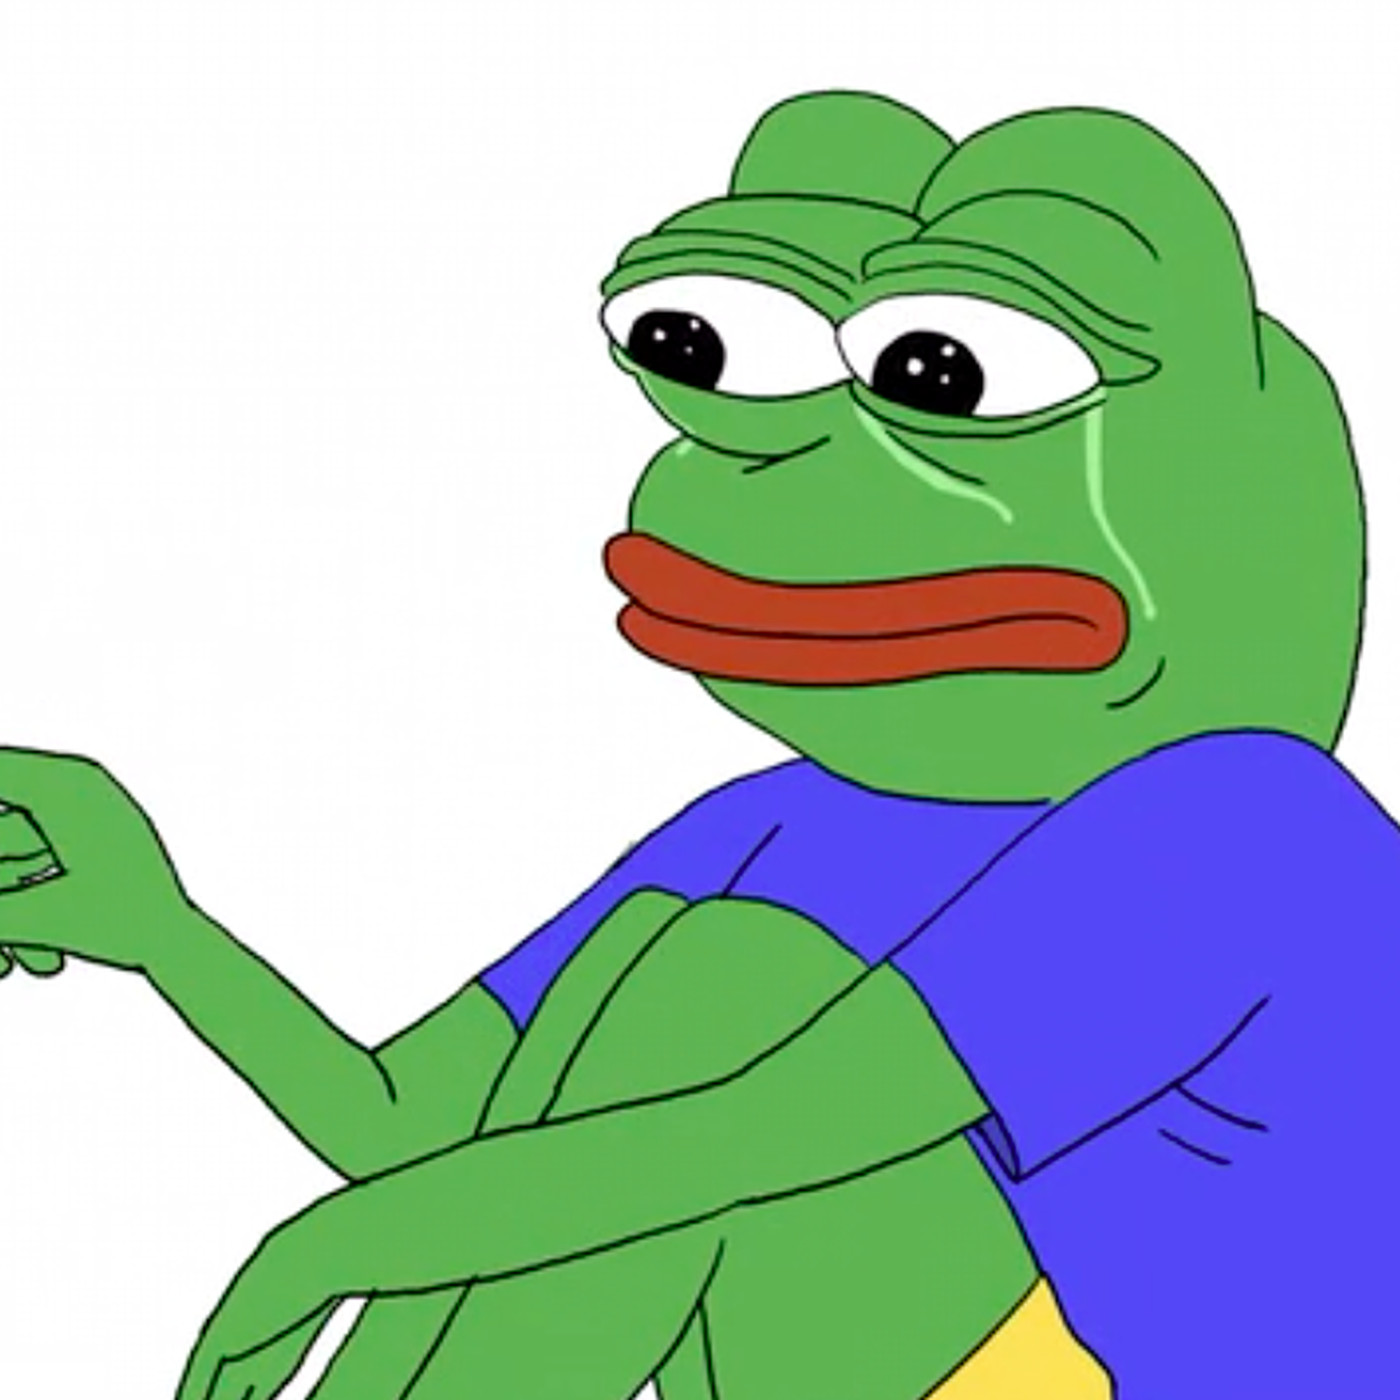 Pepe the frogs creator cant save him from the alt right but he pepe the frogs creator cant save him from the alt right but he keeps trying anyway vox buycottarizona